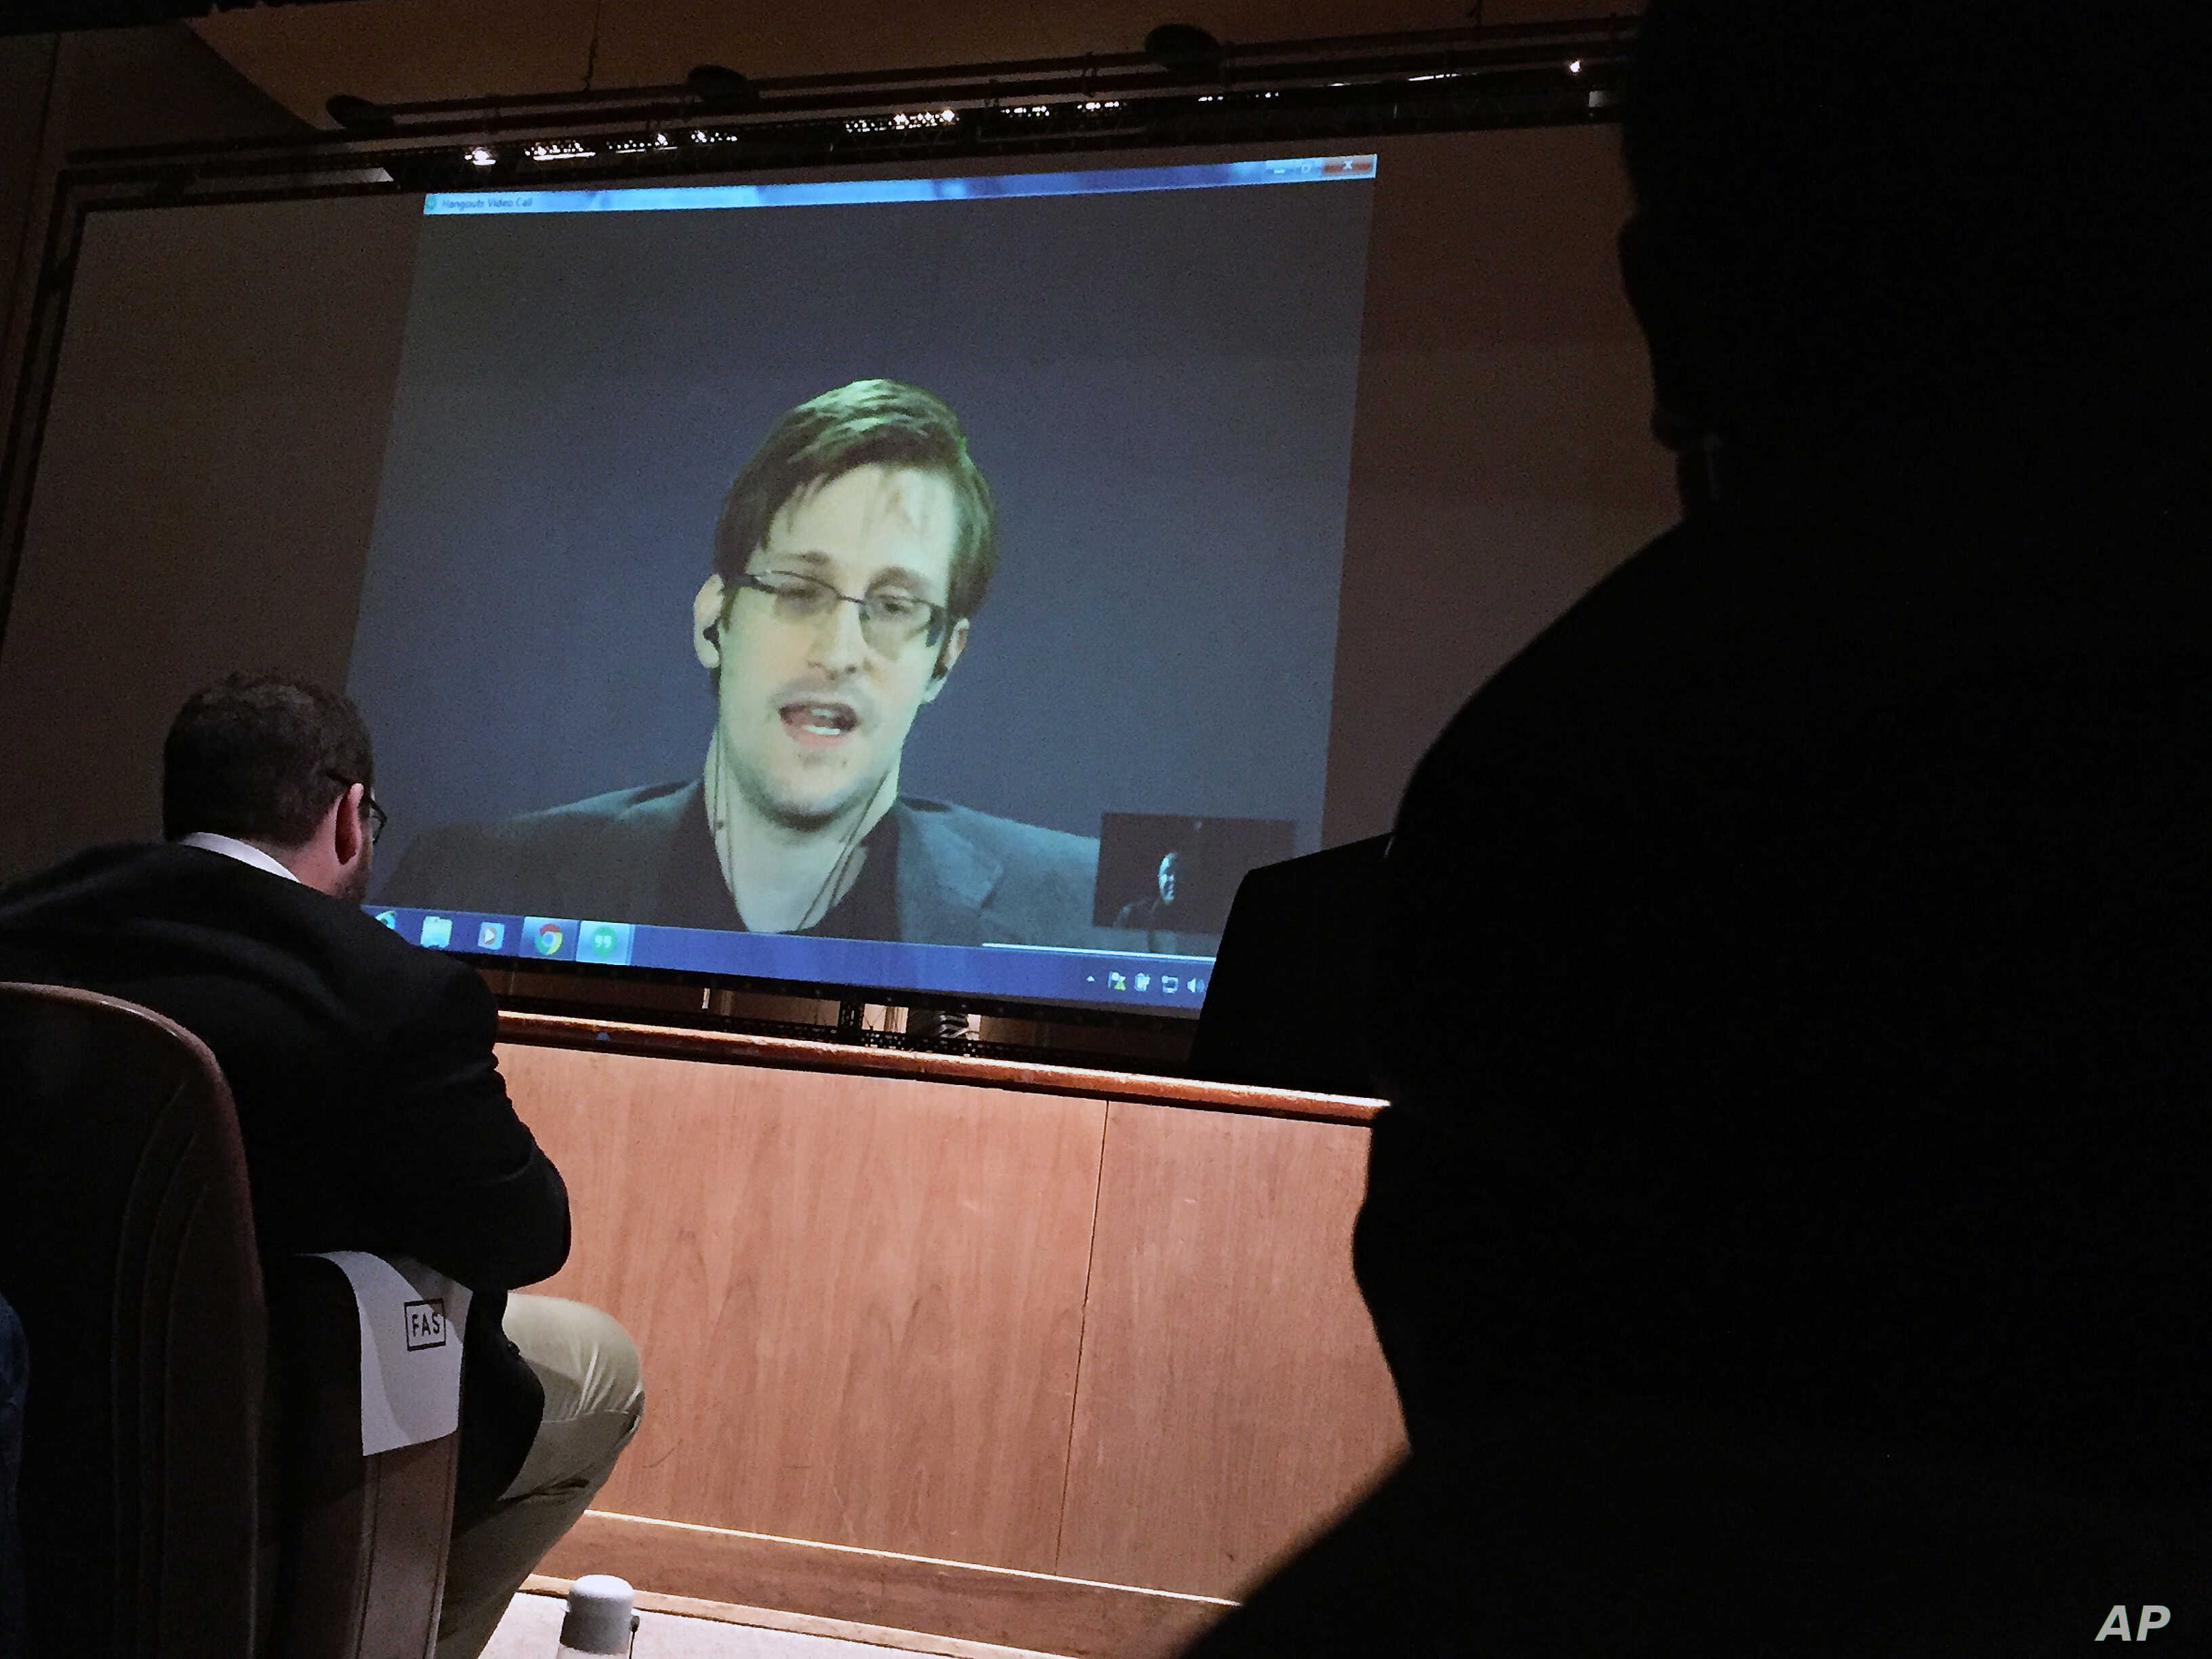 Former National Security Agency contractor Edward Snowden, center speaks via video conference to people in the Johns Hopkins University auditorium in Baltimore, Feb. 17, 2016.